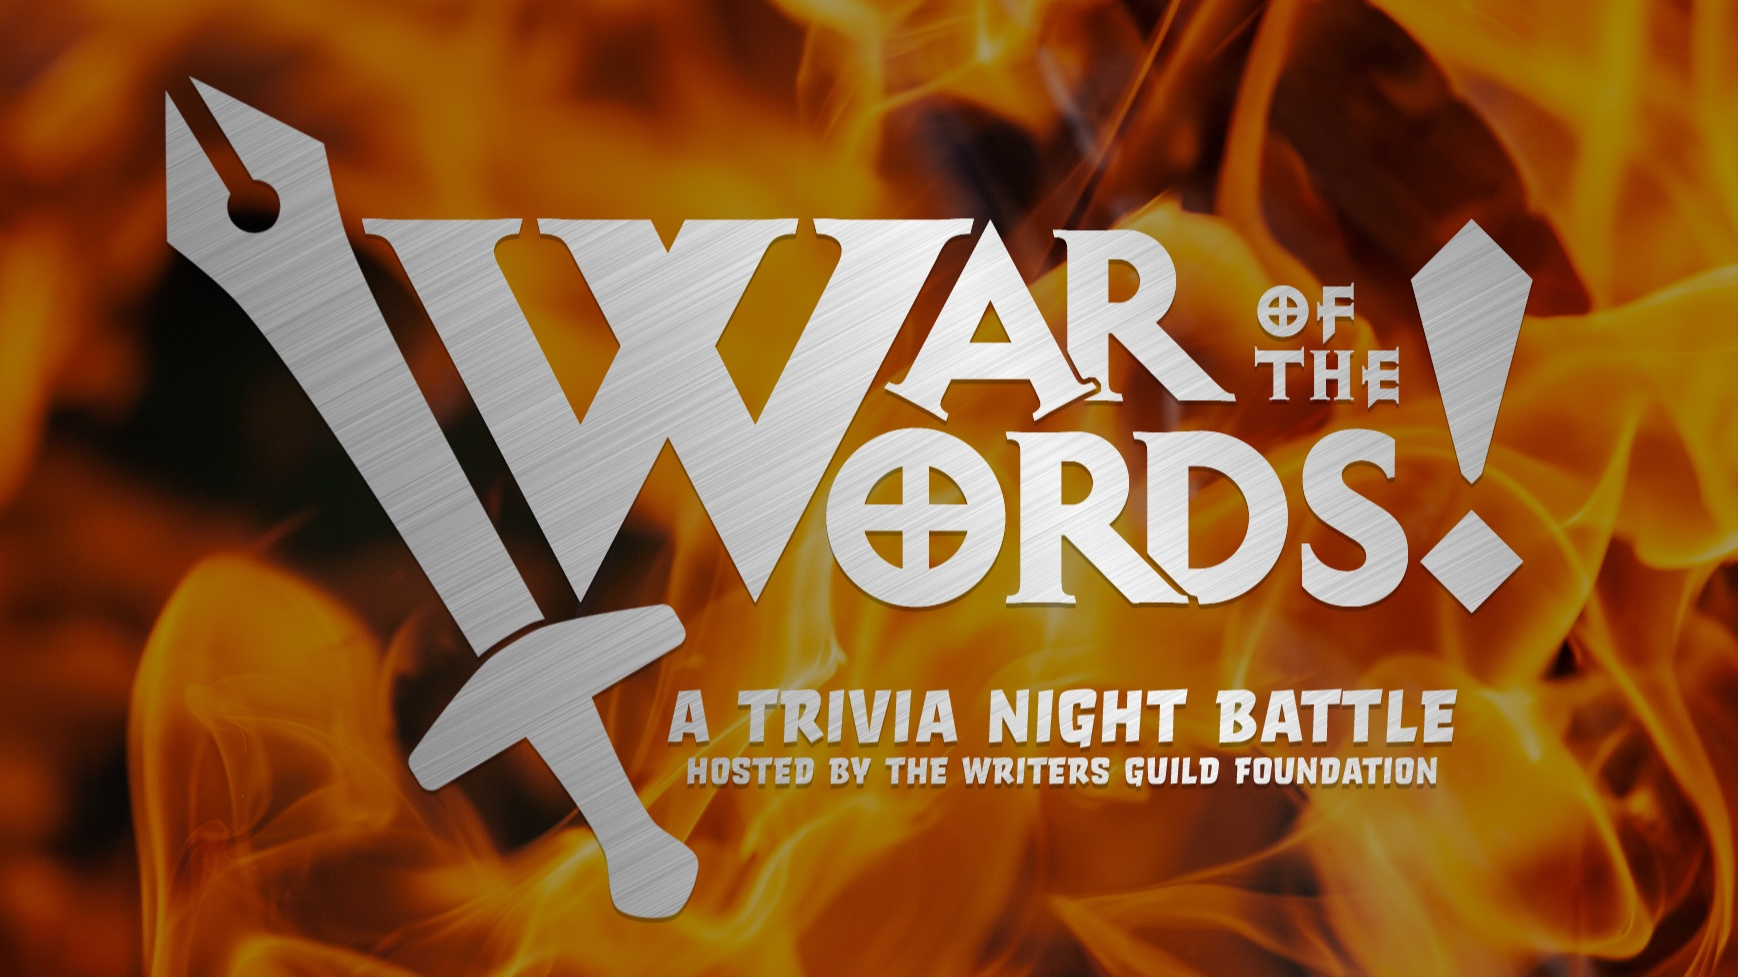 War of the Words promo image